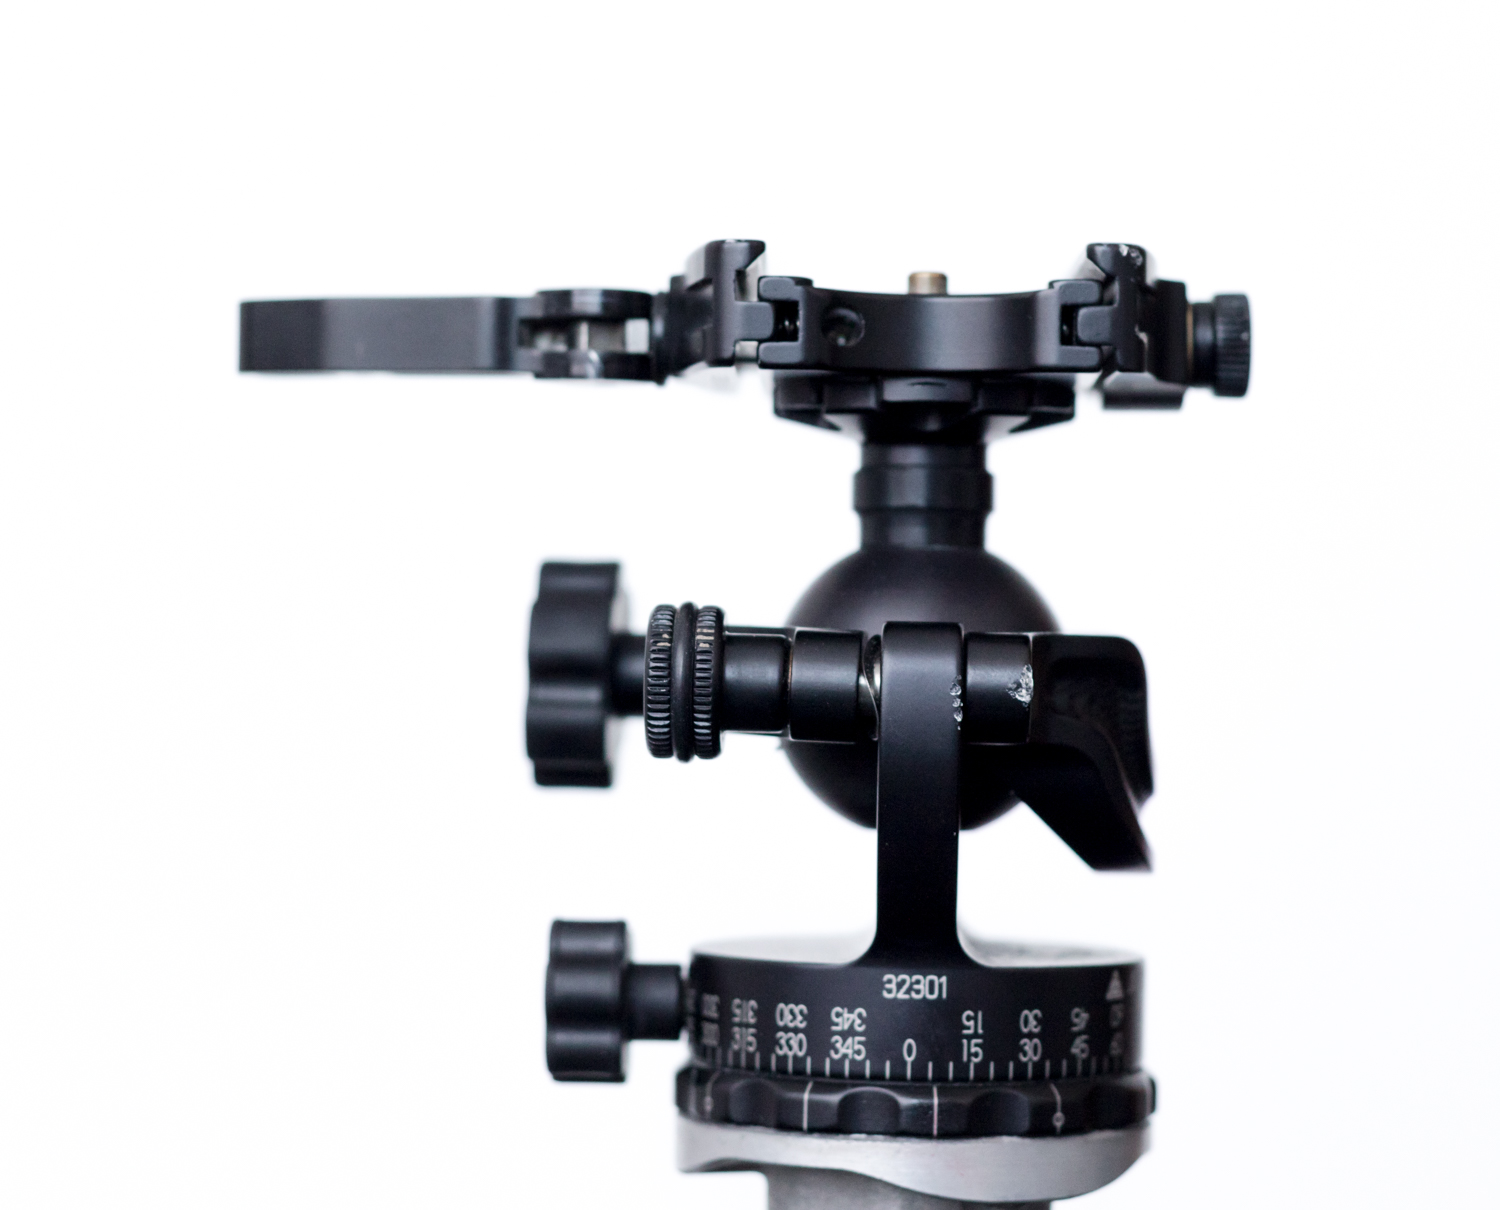 Review – Acratech GP Ball Head for Tripods